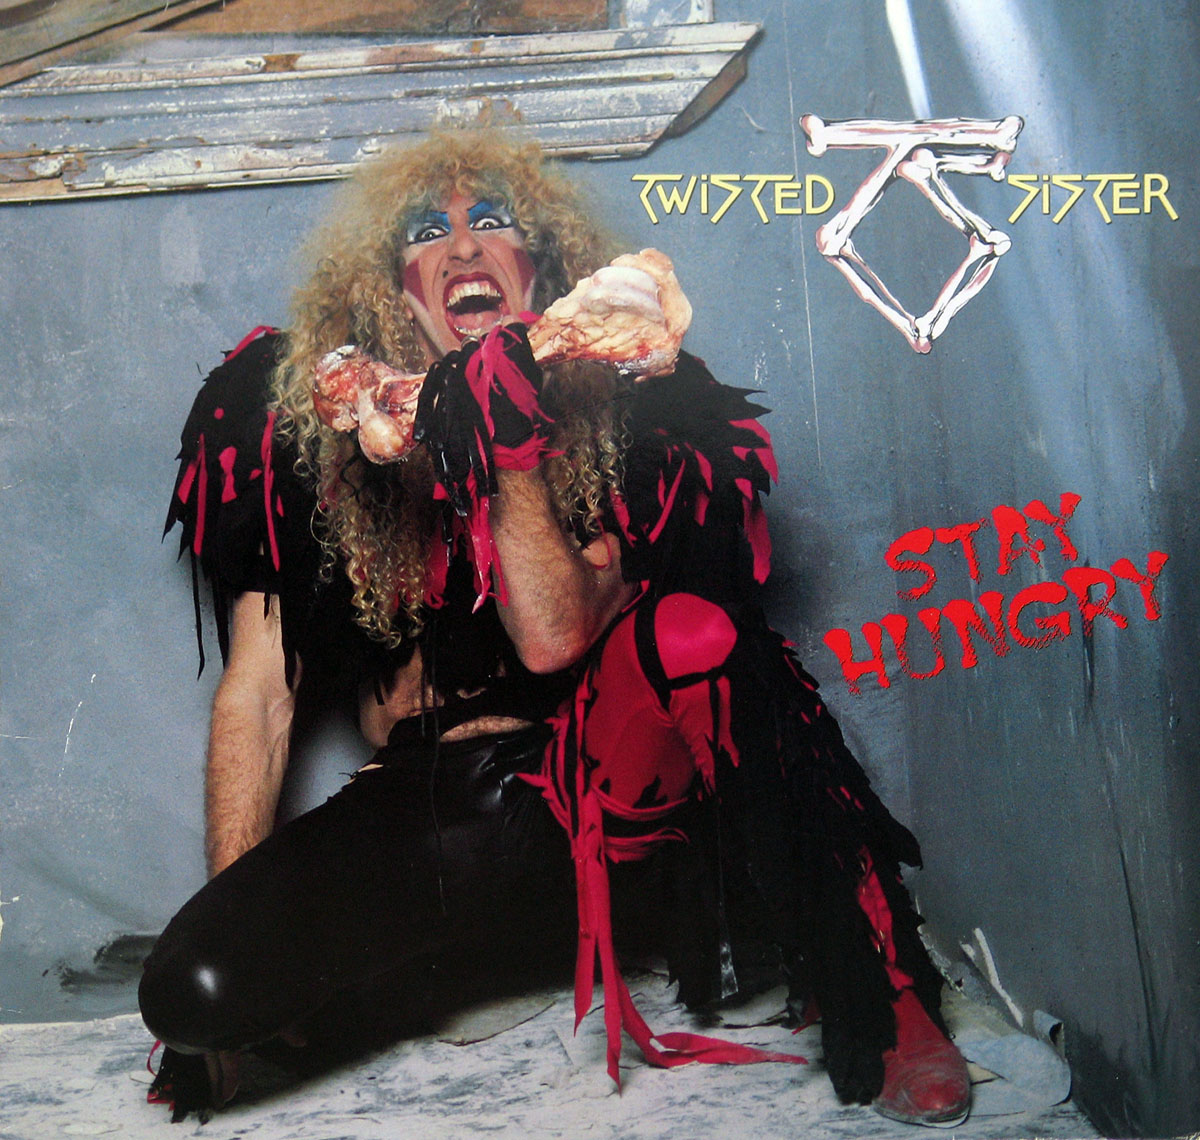 High Resolution Photos of twisted sister stay hungry germany